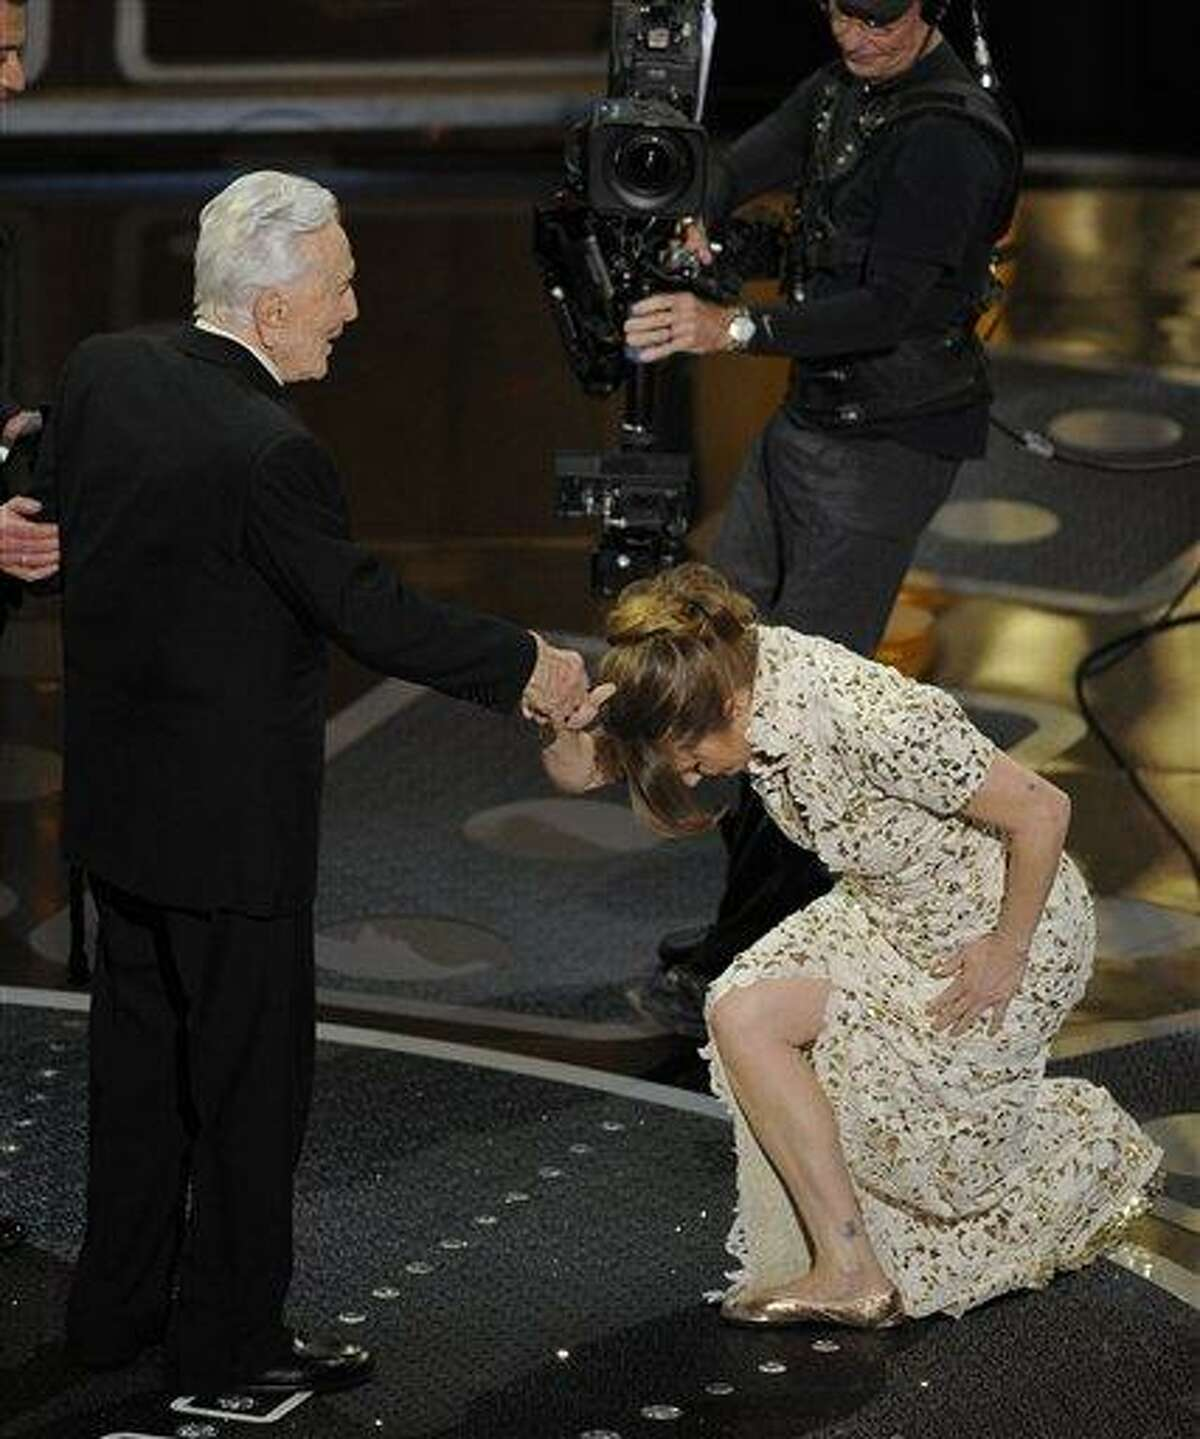 Melissa Leo bows to Kirk Douglass as she accepts the Oscar for best actress in a supporting role for